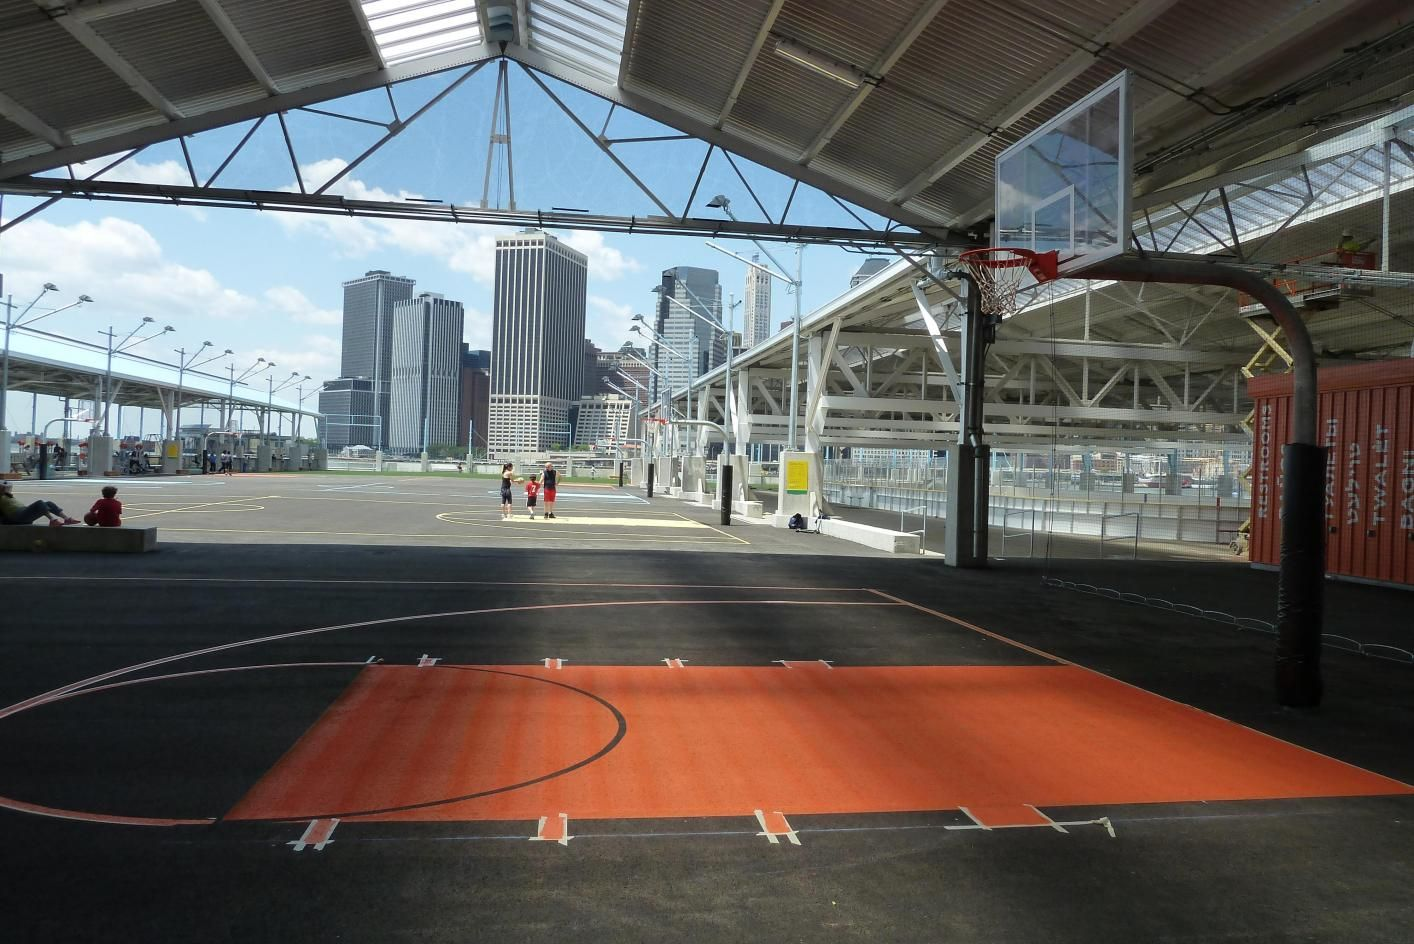 Point Shoot And Score At One Of Five Basketball Courts On Pier 2 Including Two Covered Courts Home Basketball Court Basketball Basketball Park